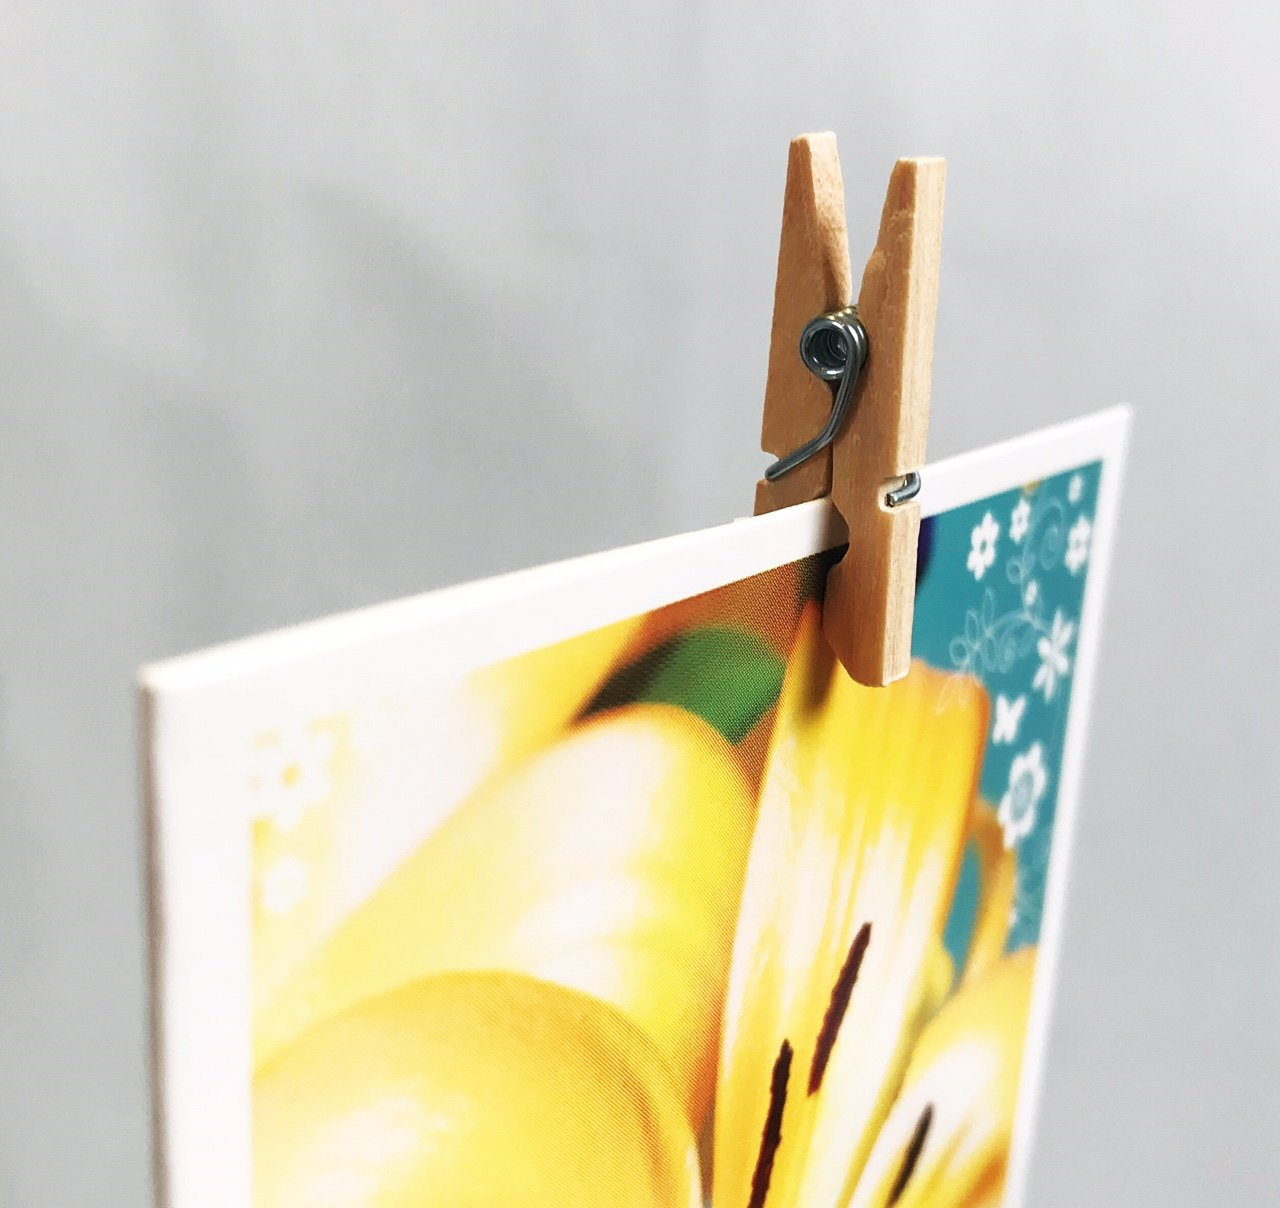 Wooden clothes peg singles display with picture